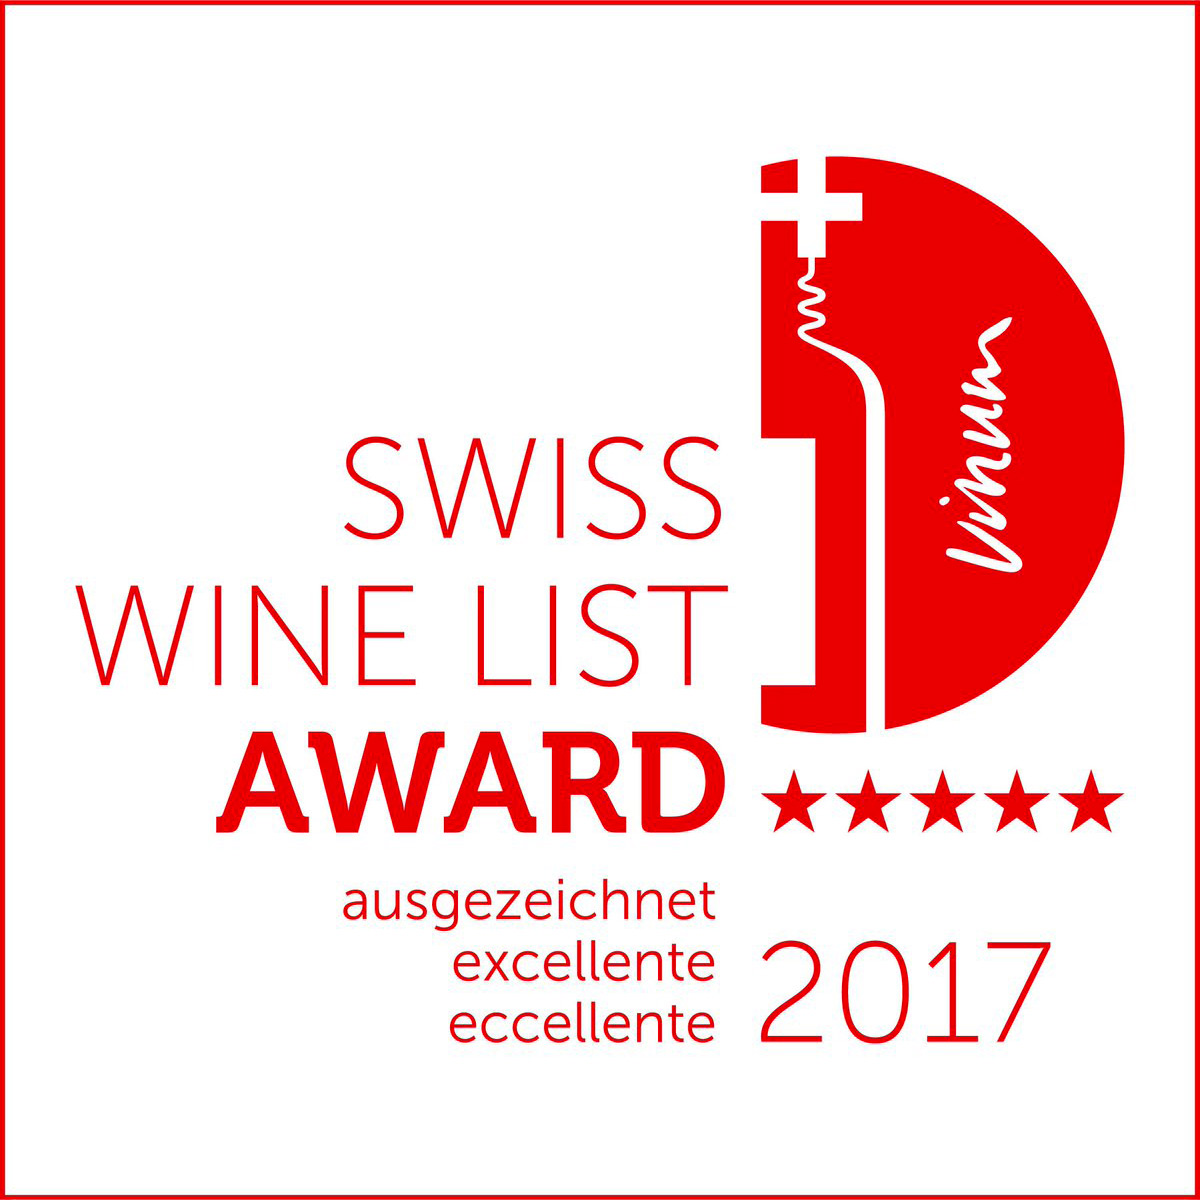 wine list award 2017